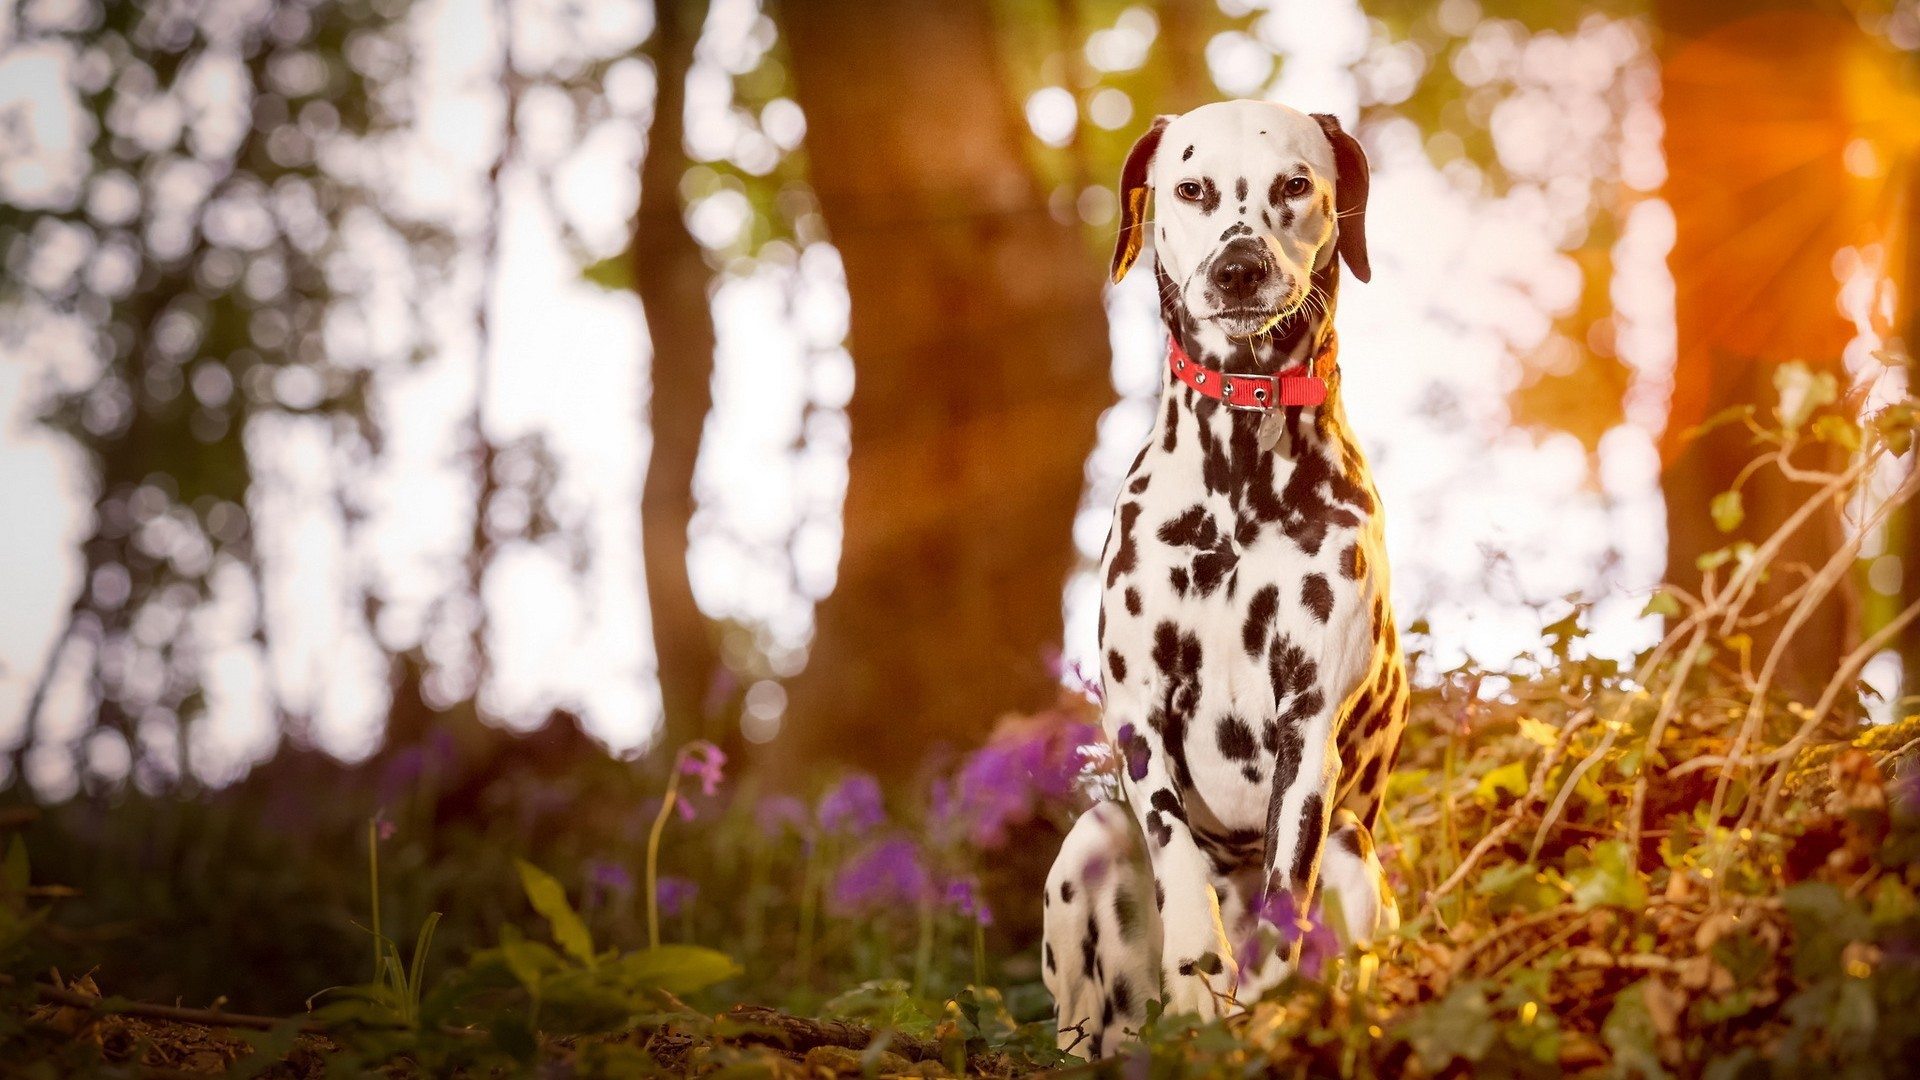 Cute Puppies Wallpaper 1080p Dalmatian Dog Wallpapers Archives Hdwallsource Com